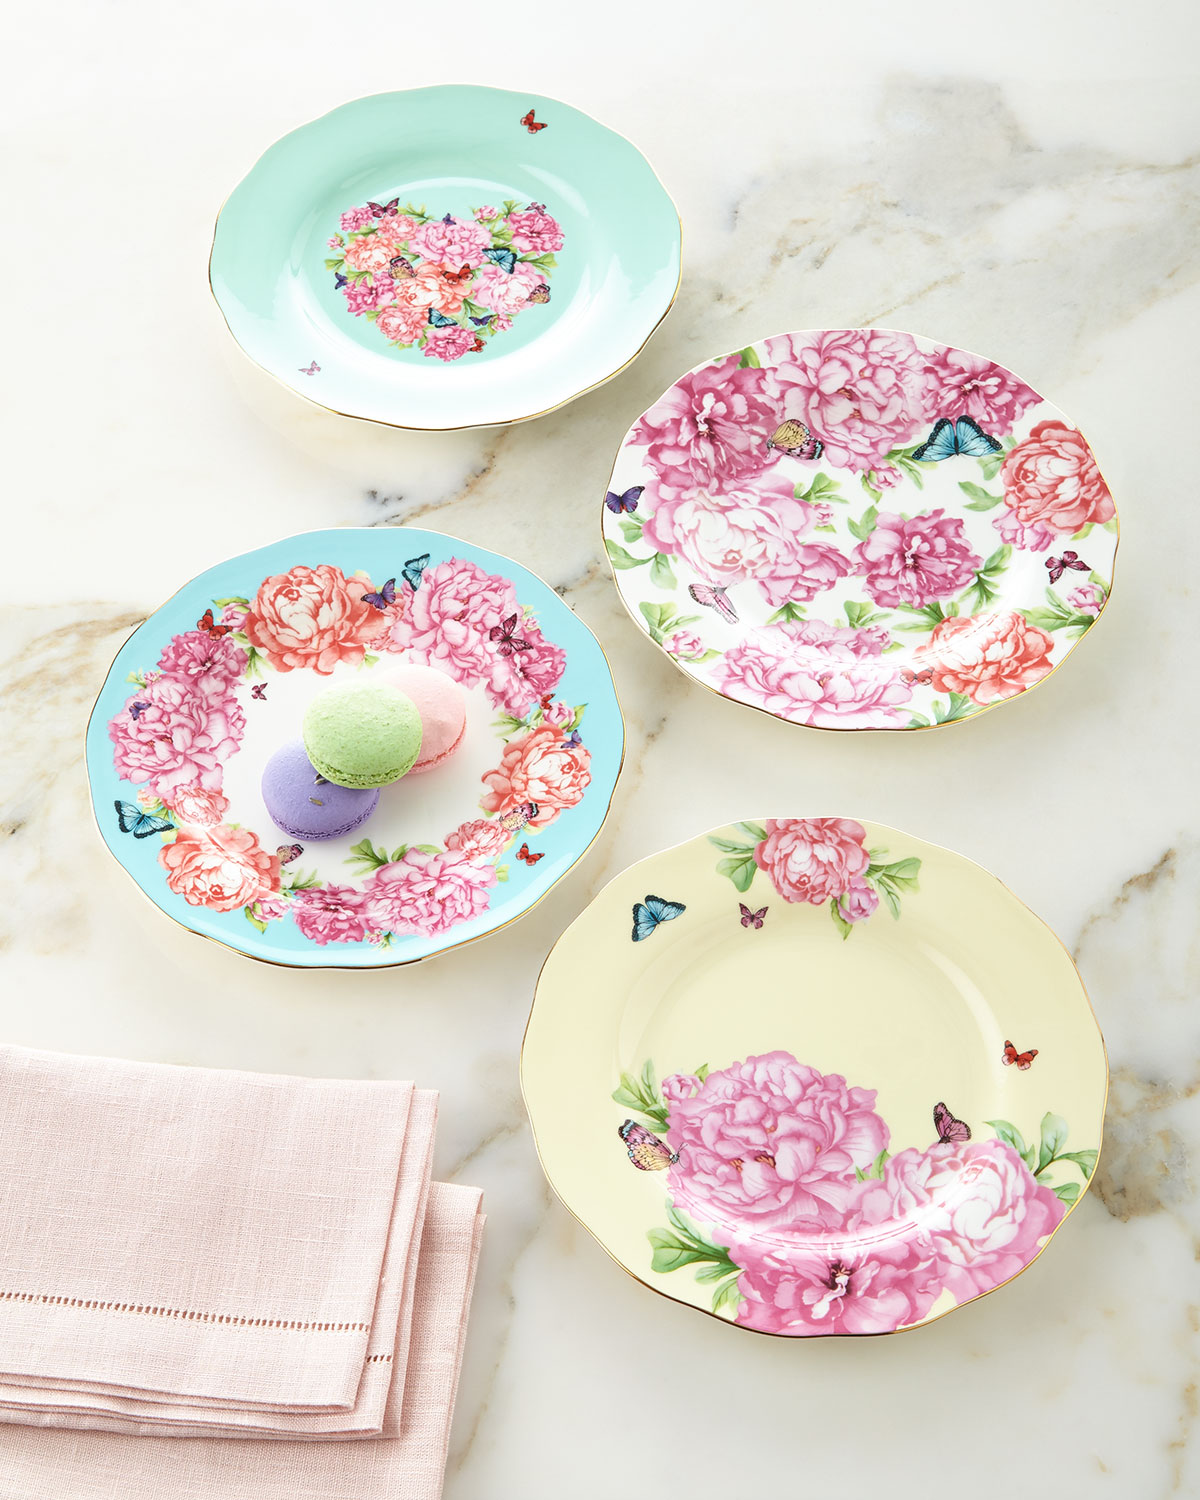 Gorgeous plates for spring